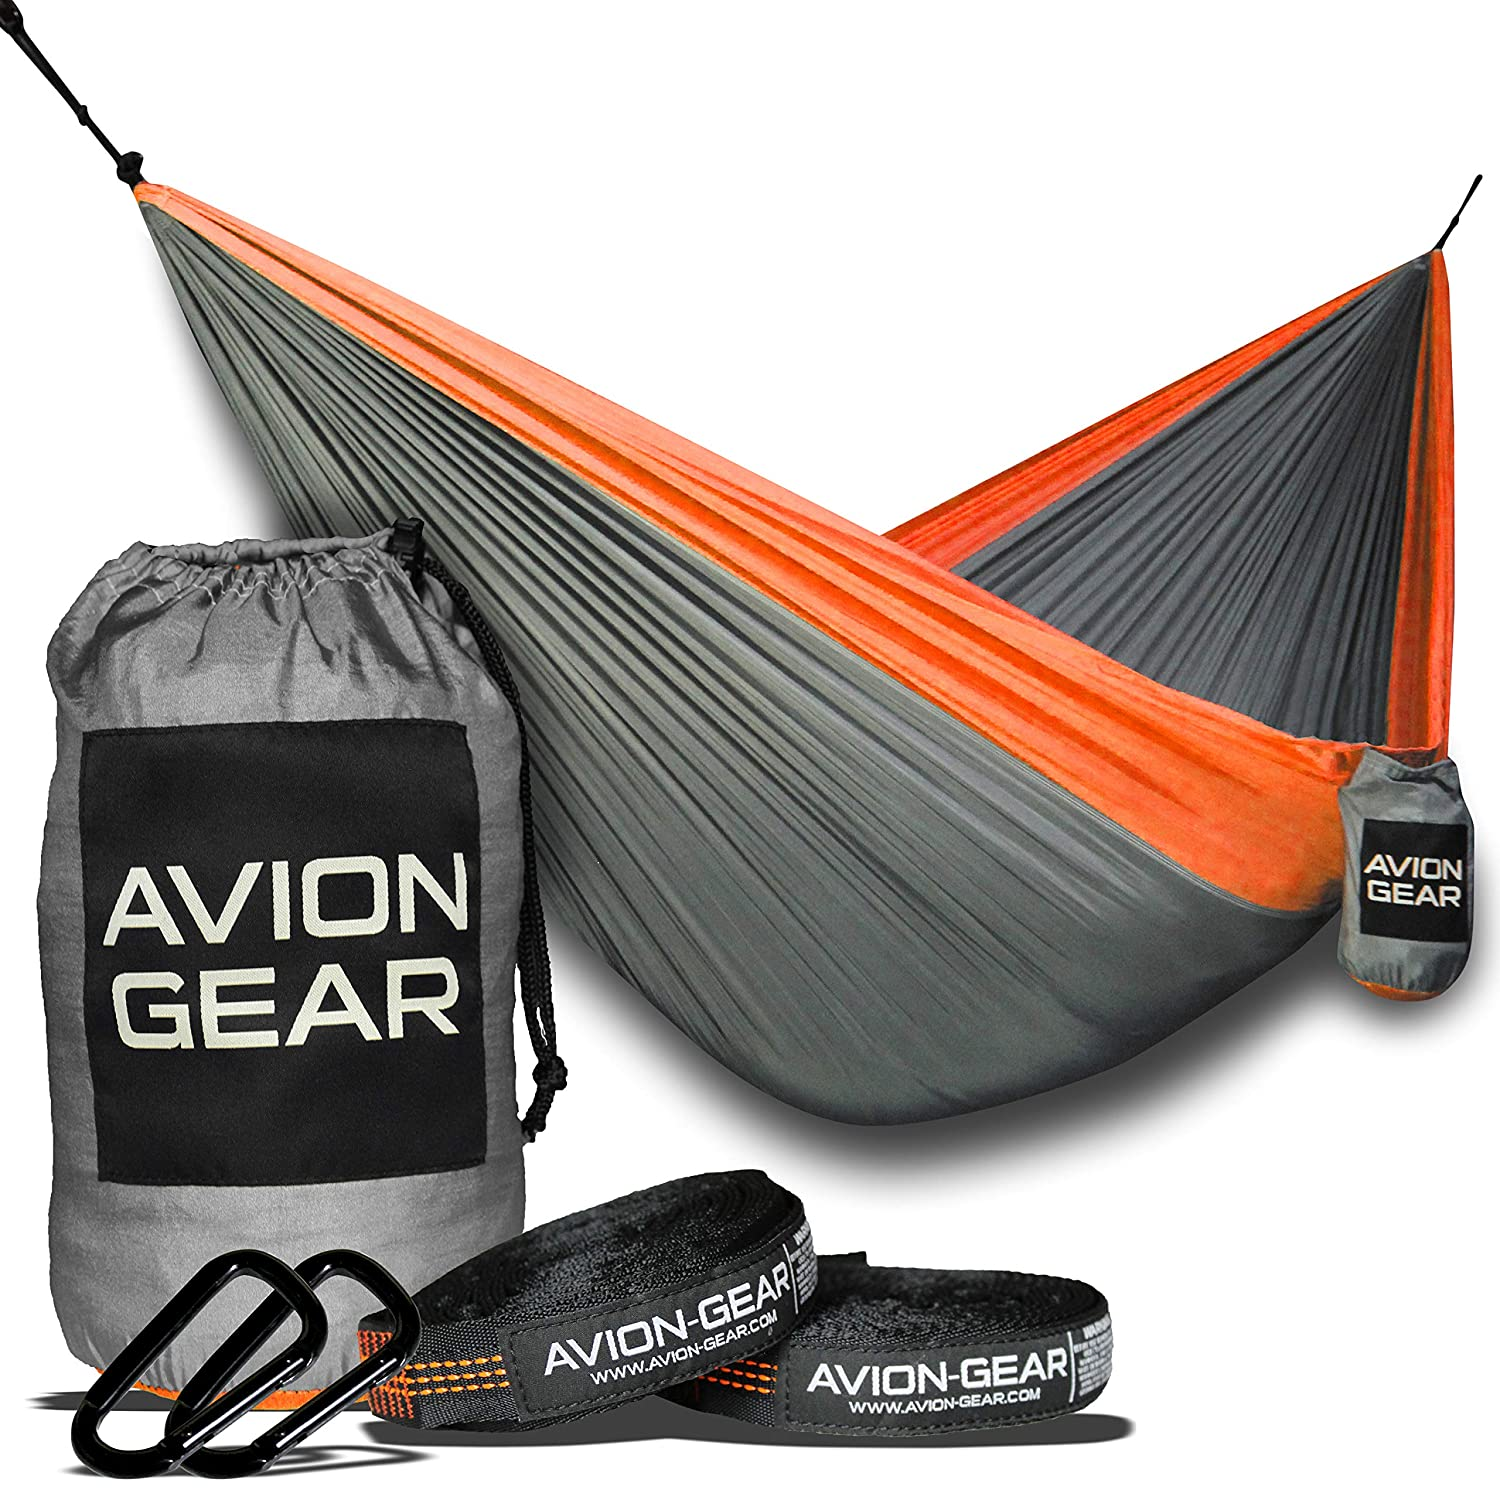 Avion Gear Hammock Portable and Lightweight Perfect for Camping Complete Kit 2 Hammock Tree Straps 2 Hammock Carabiners and a Double Nylon Parachute Hammock Outdoor Portable Hammock Orange